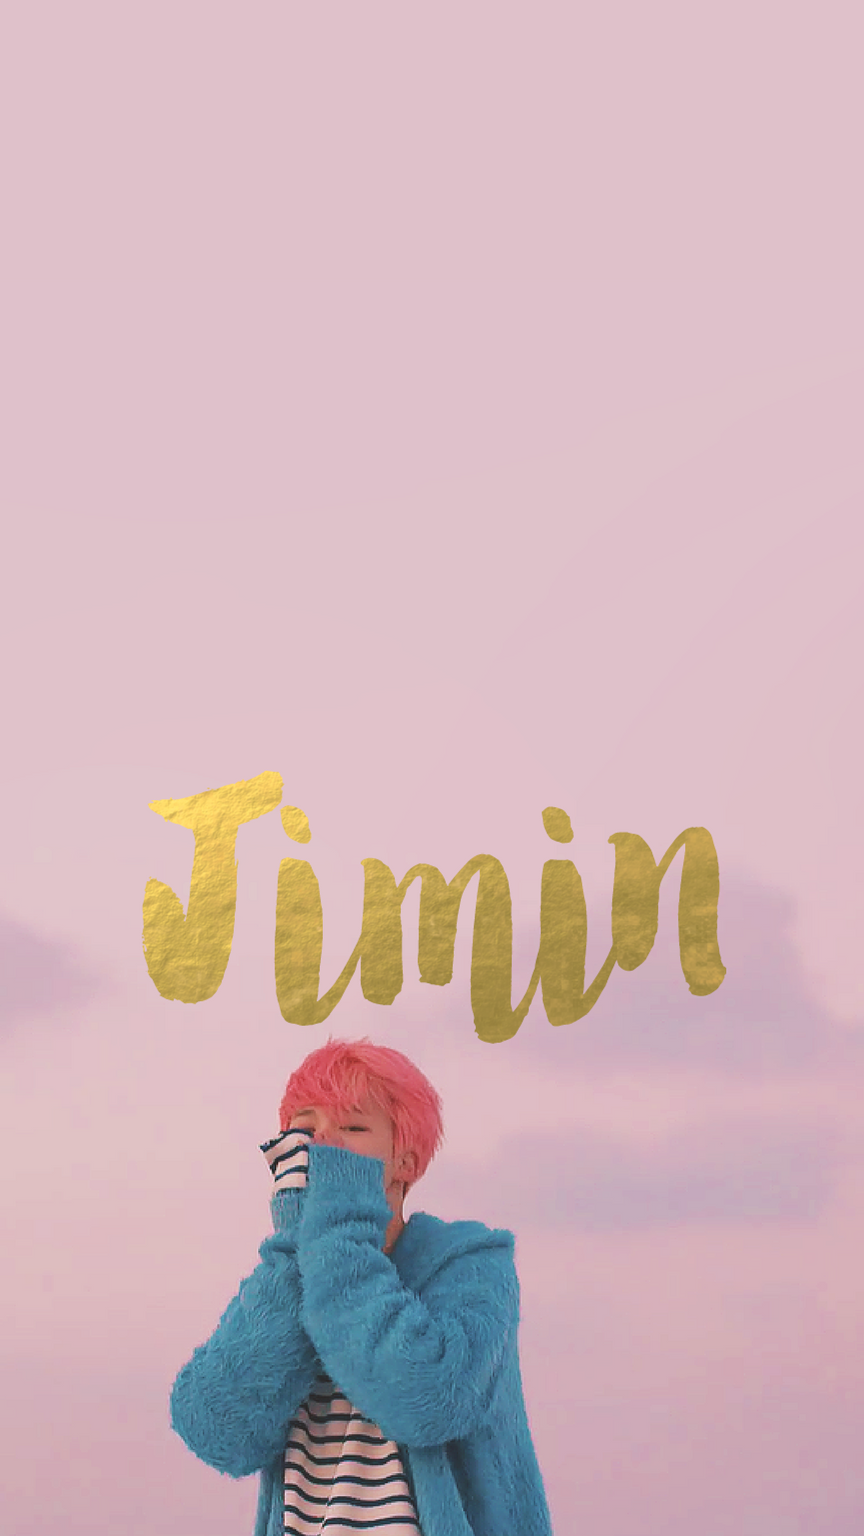 Jimin Wallpaper Iphone